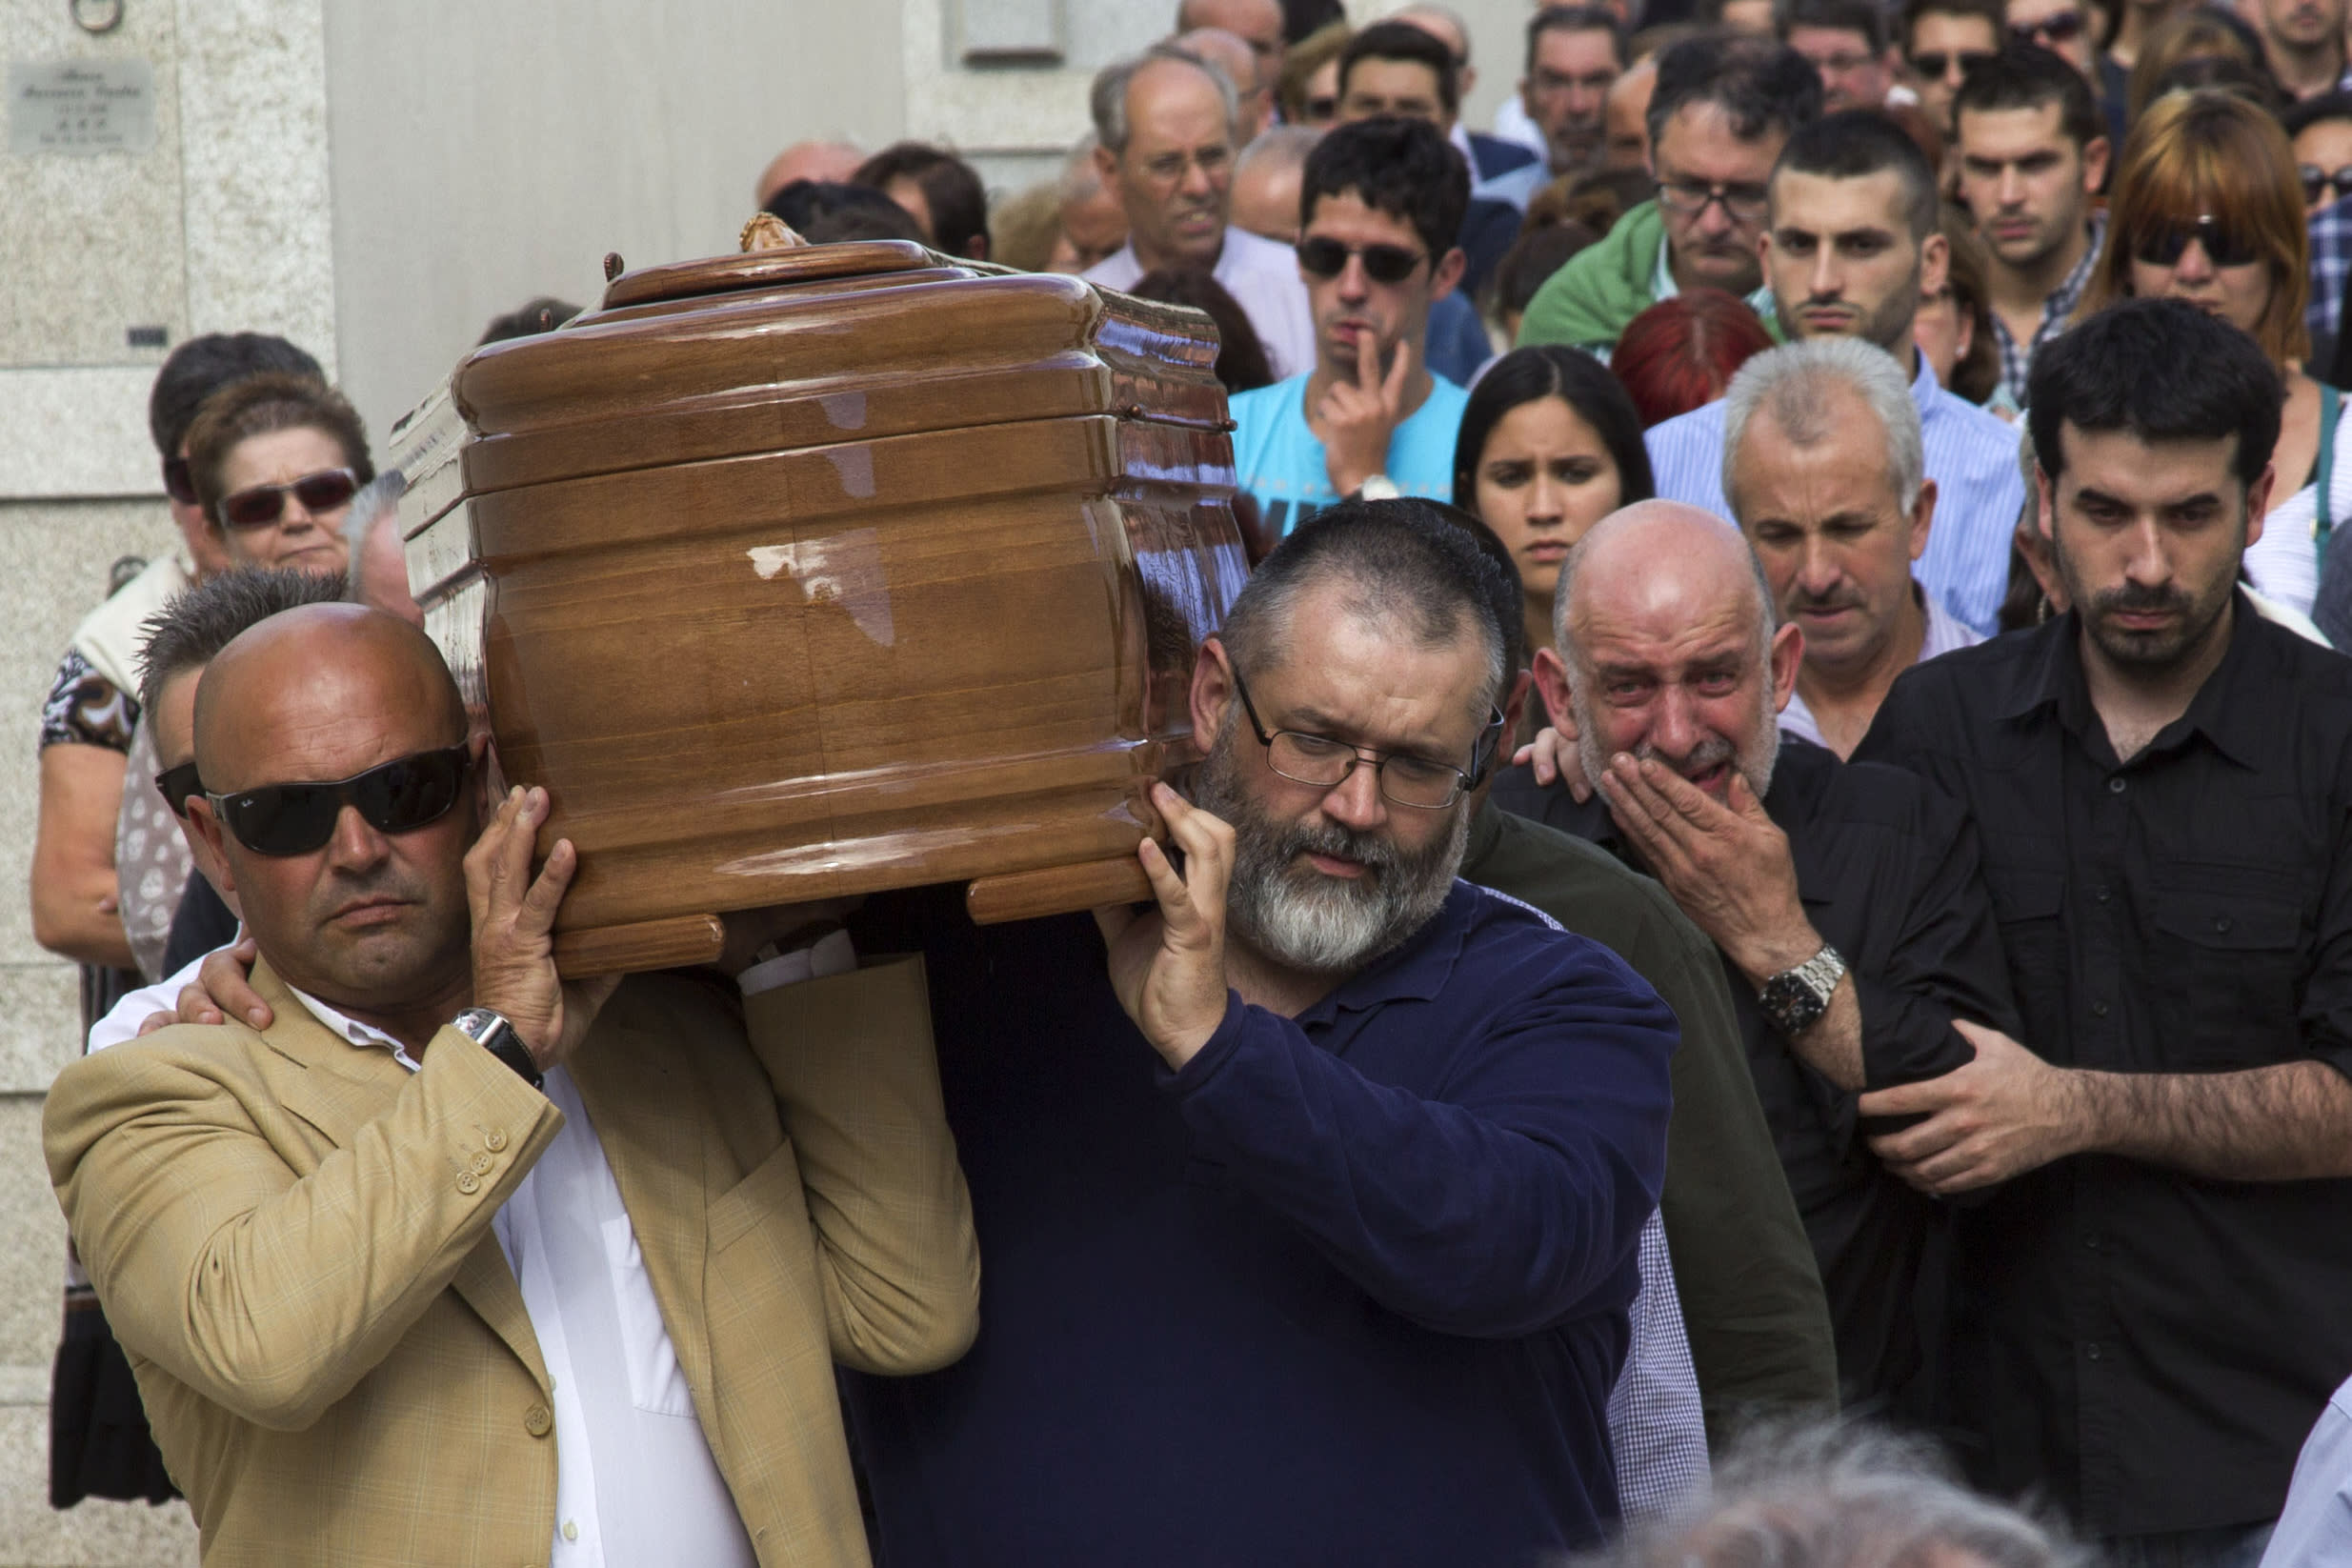 People carry the coffin of medical student Laura Naveiras Ferreiro, one of the train crash victim, during her funeral at the San Pedro de Visma cemetery in A Coruna, Spain, Saturday, July 27, 2013. Spain's interior minister Jorge Fernandez Diaz says the driver whose speeding train crashed, killing 78 people, is now being held on suspicion of negligent homicide. The Spanish train derailed at high speed Wednesday killing 78 and injuring dozens more. (AP Photo/Lalo R. Villar)